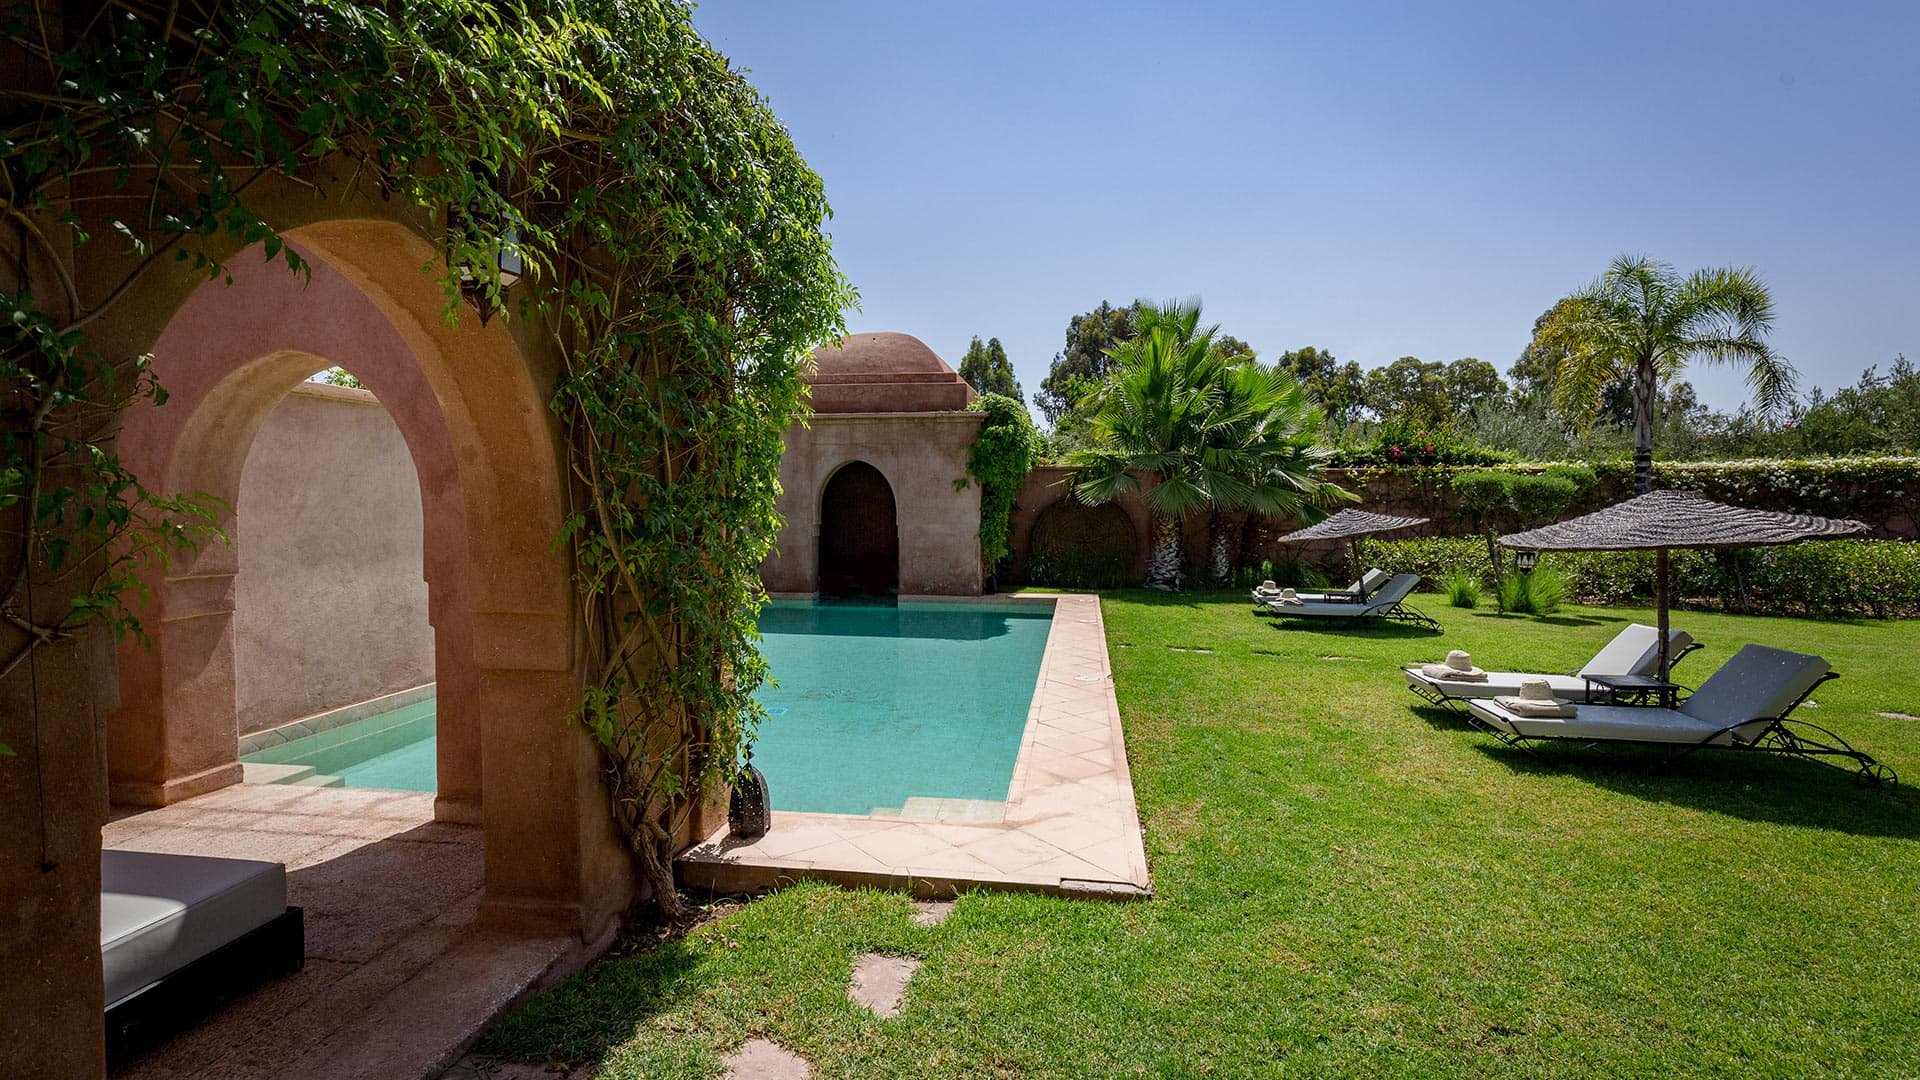 Villa Villa Mafalda, Rental in Marrakech